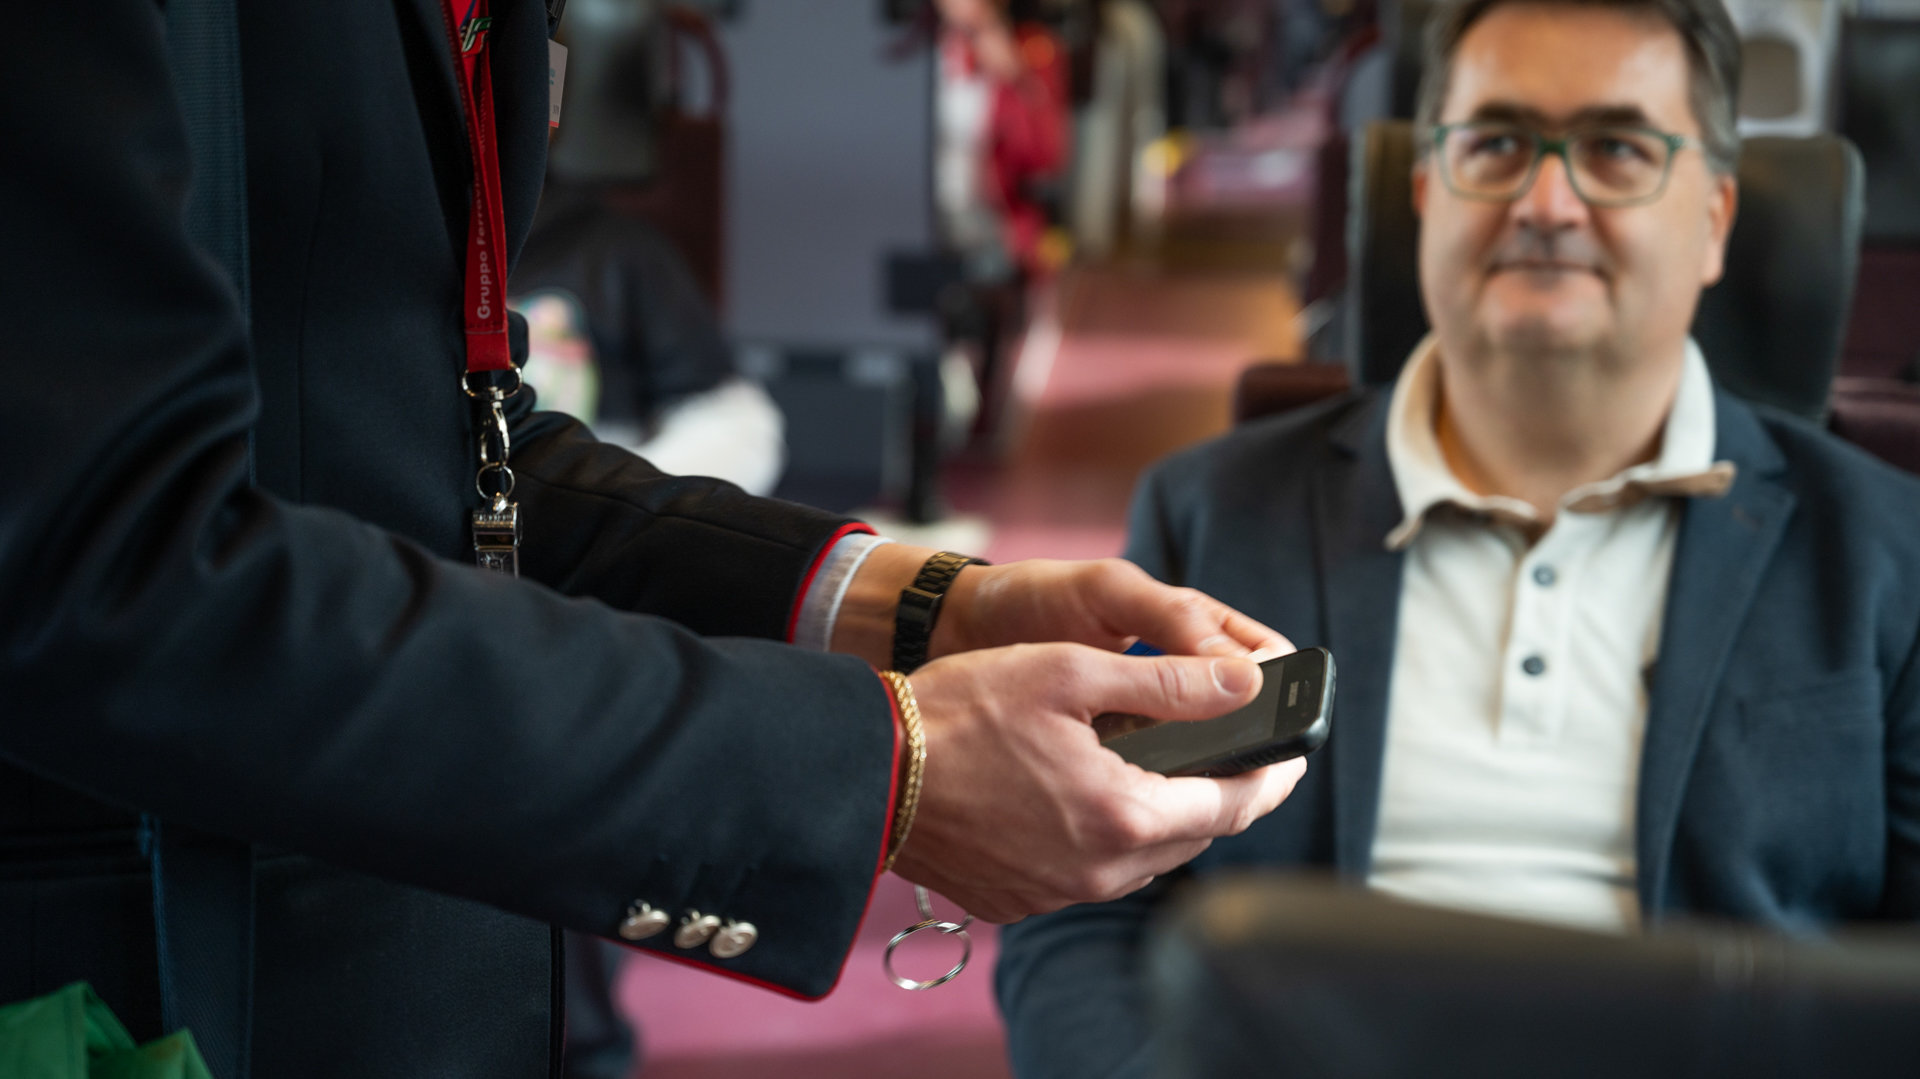 A ticket inspector checks a ticket using his smartphone.